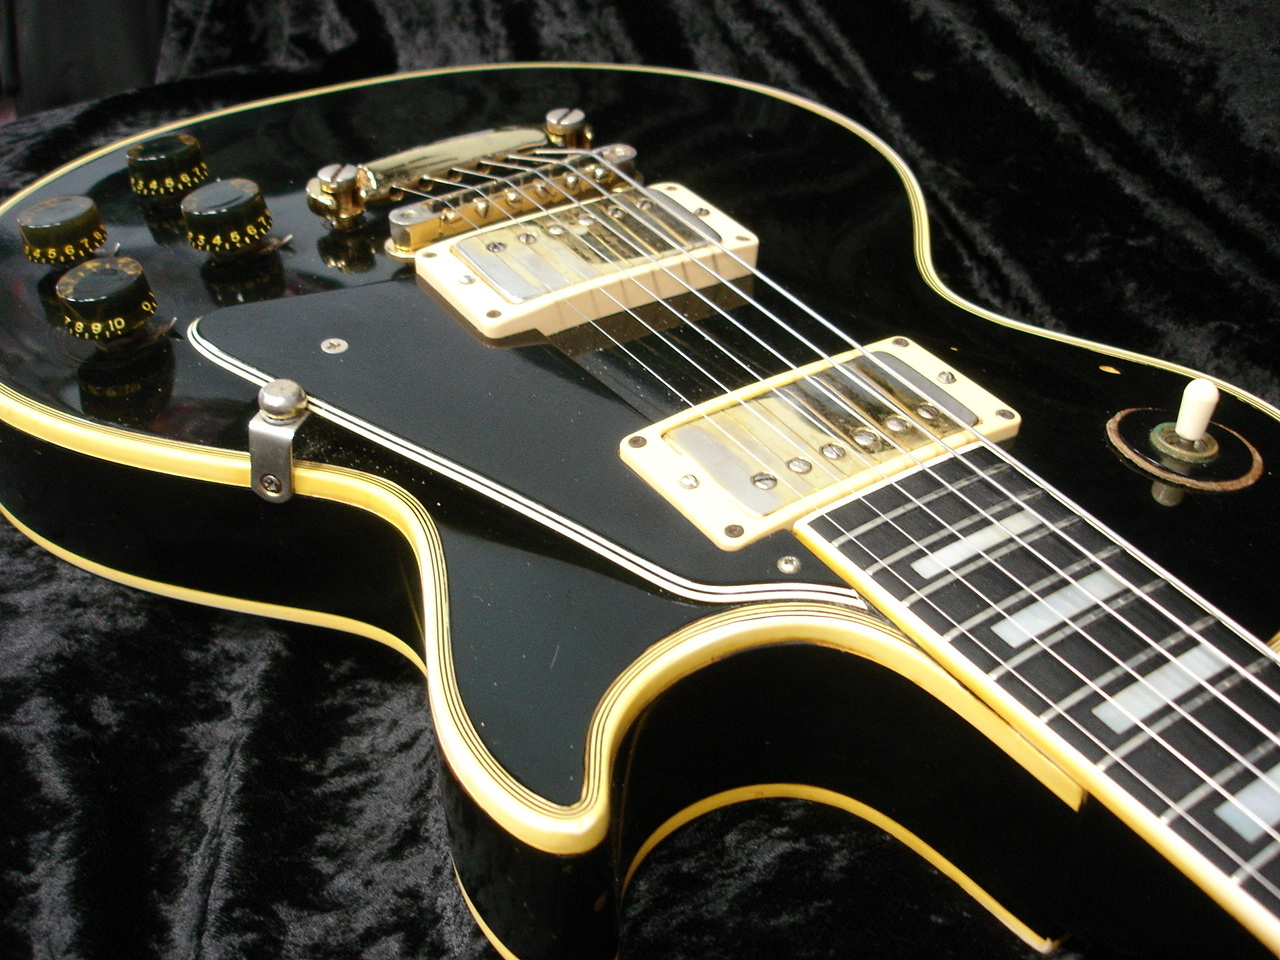 gibson 1969 les paul custom via this auction where you ll find more pics  [ 1280 x 960 Pixel ]